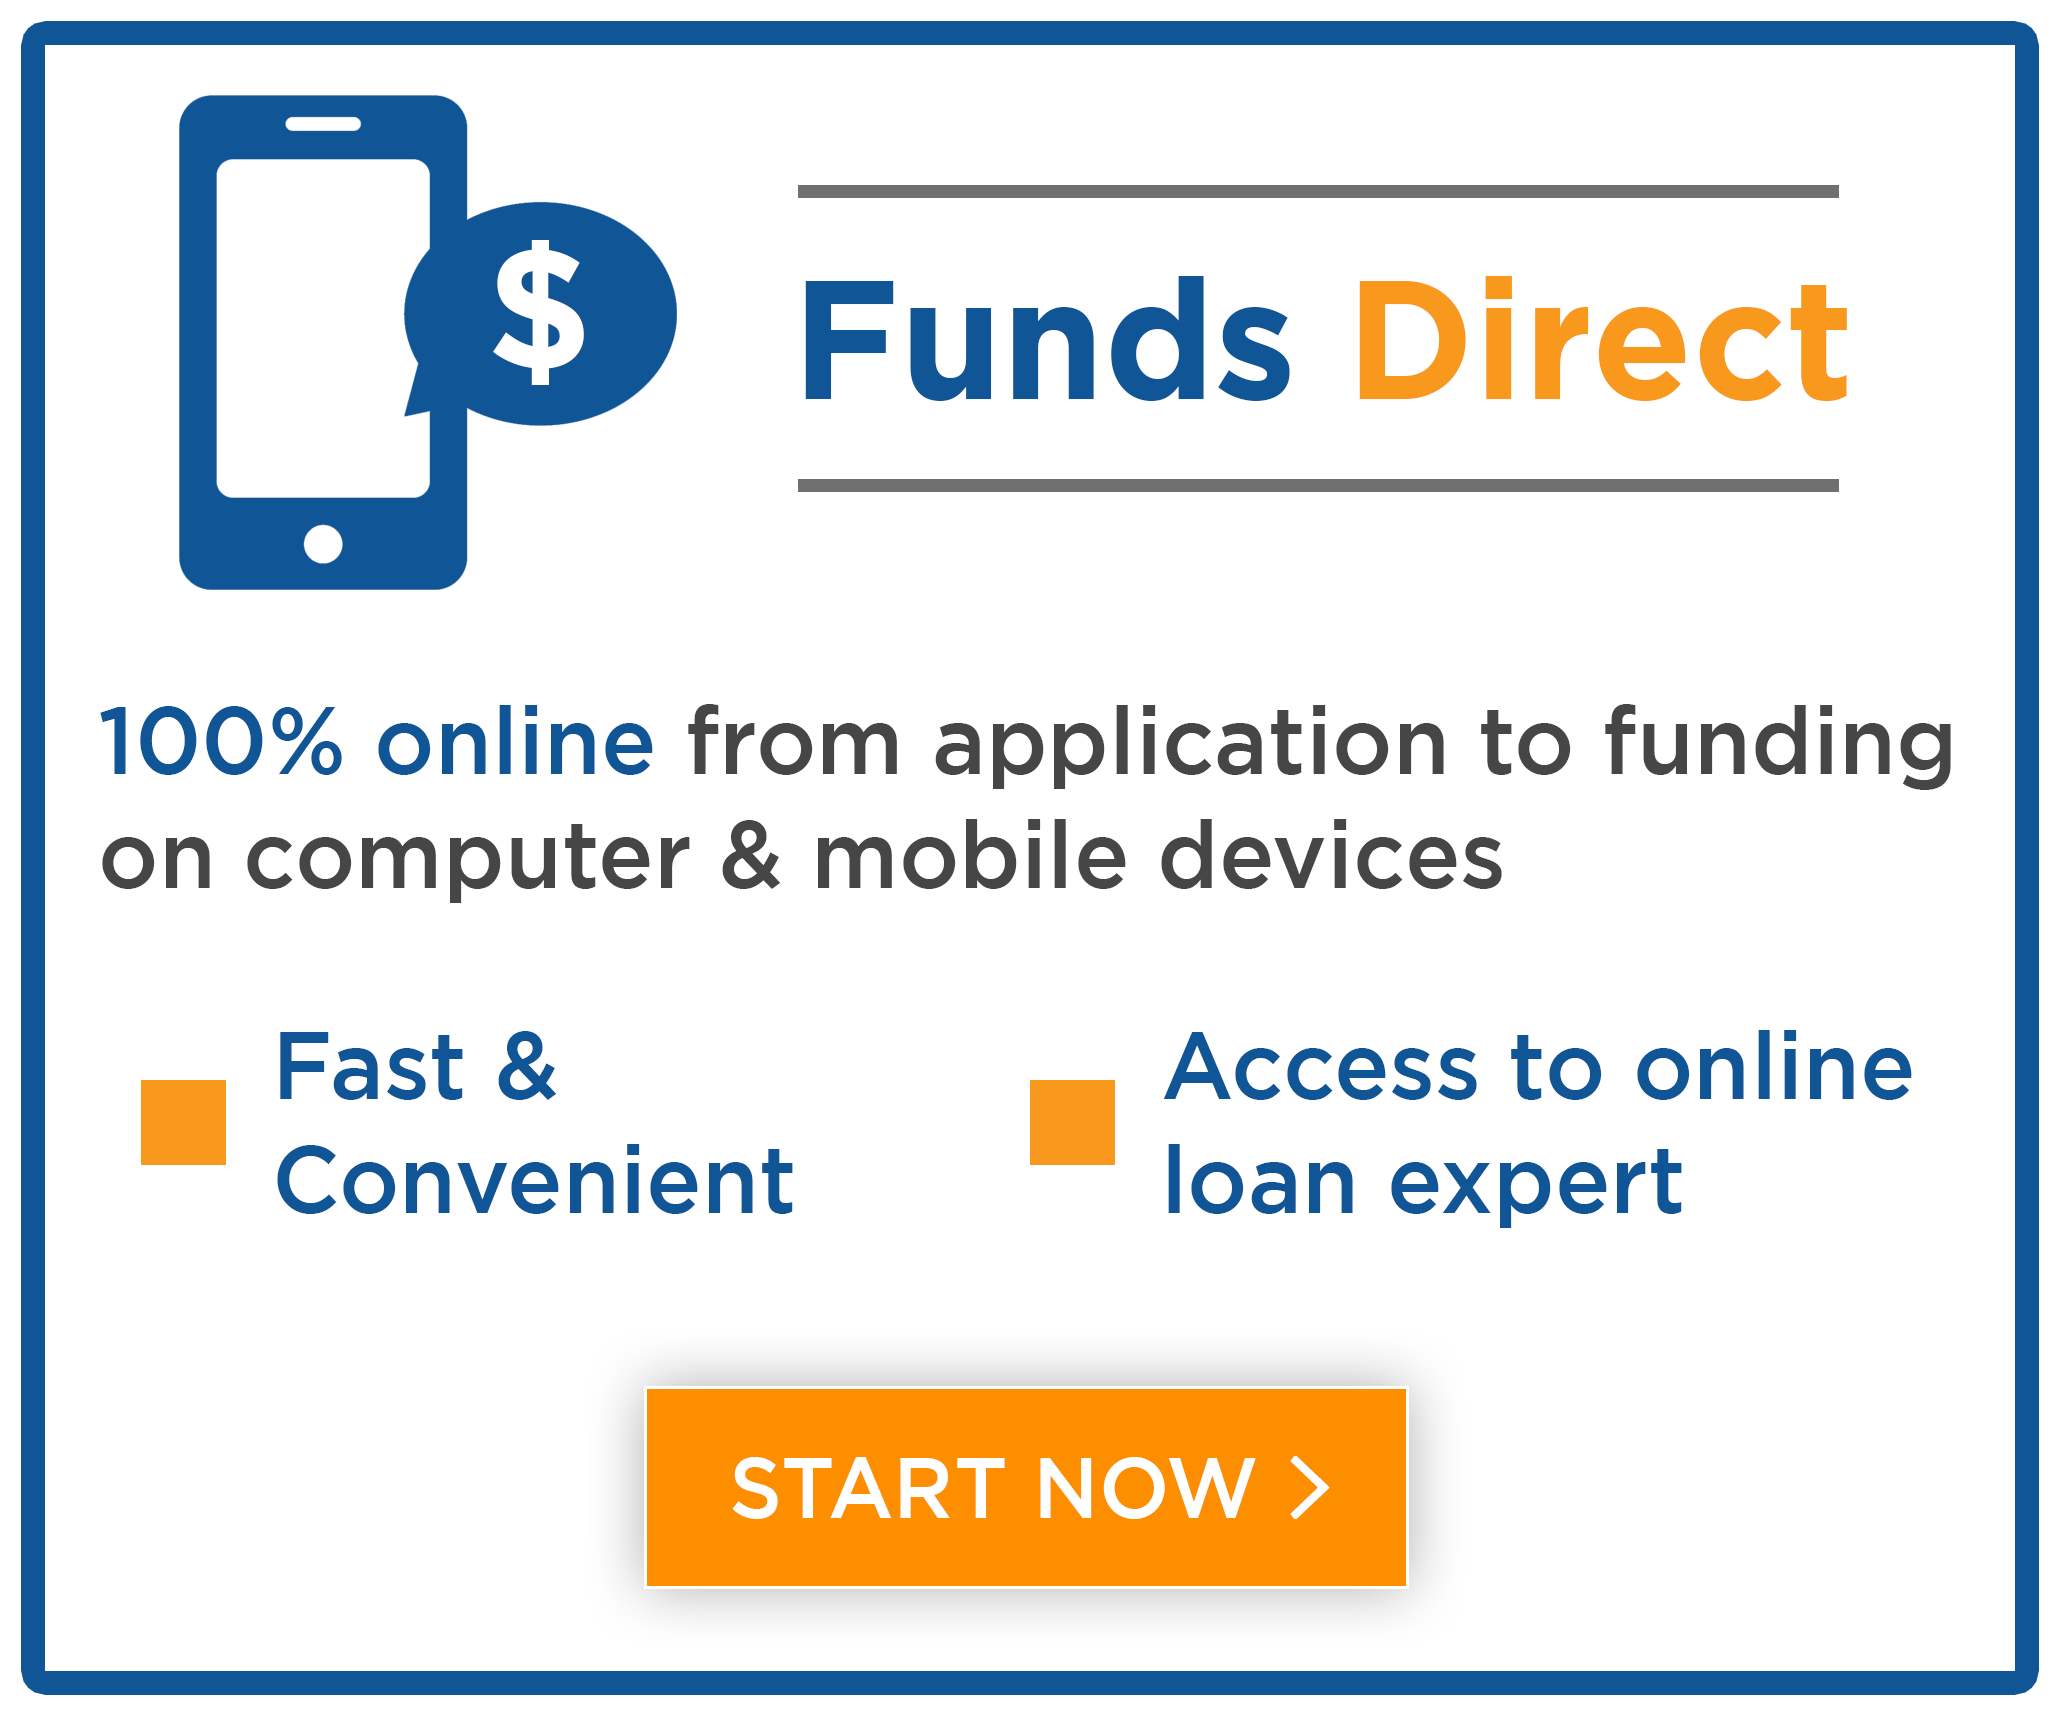 Get the money you need 100% online with Funds Direct at Central Sunbelt FCU